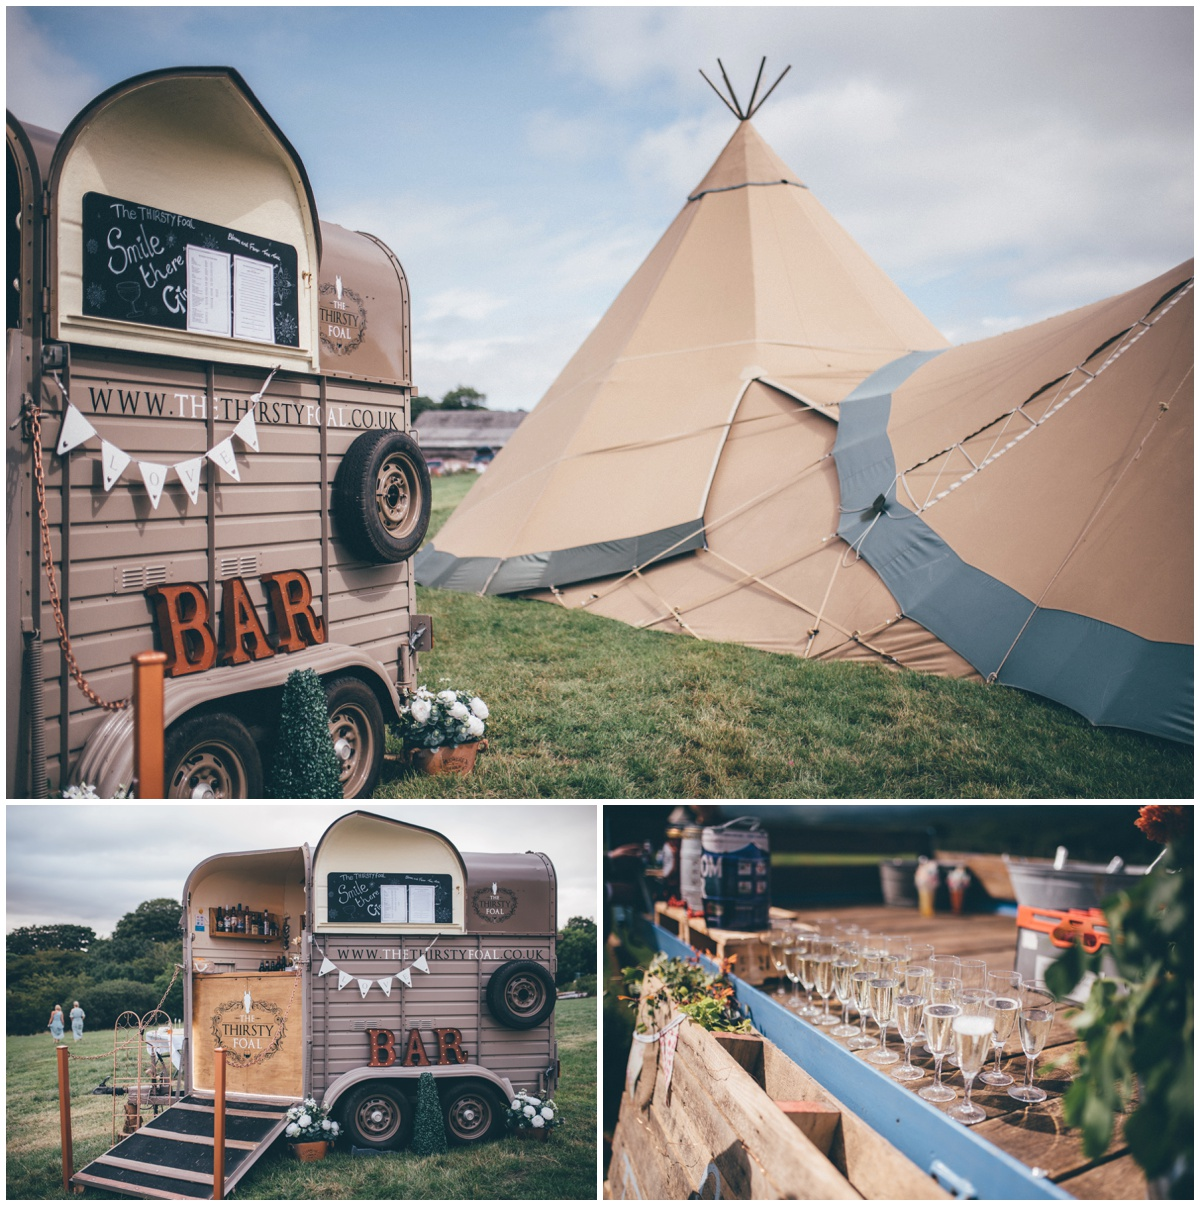 Tipi wedding in Staffordshire by Cheshire wedding photgrapher.